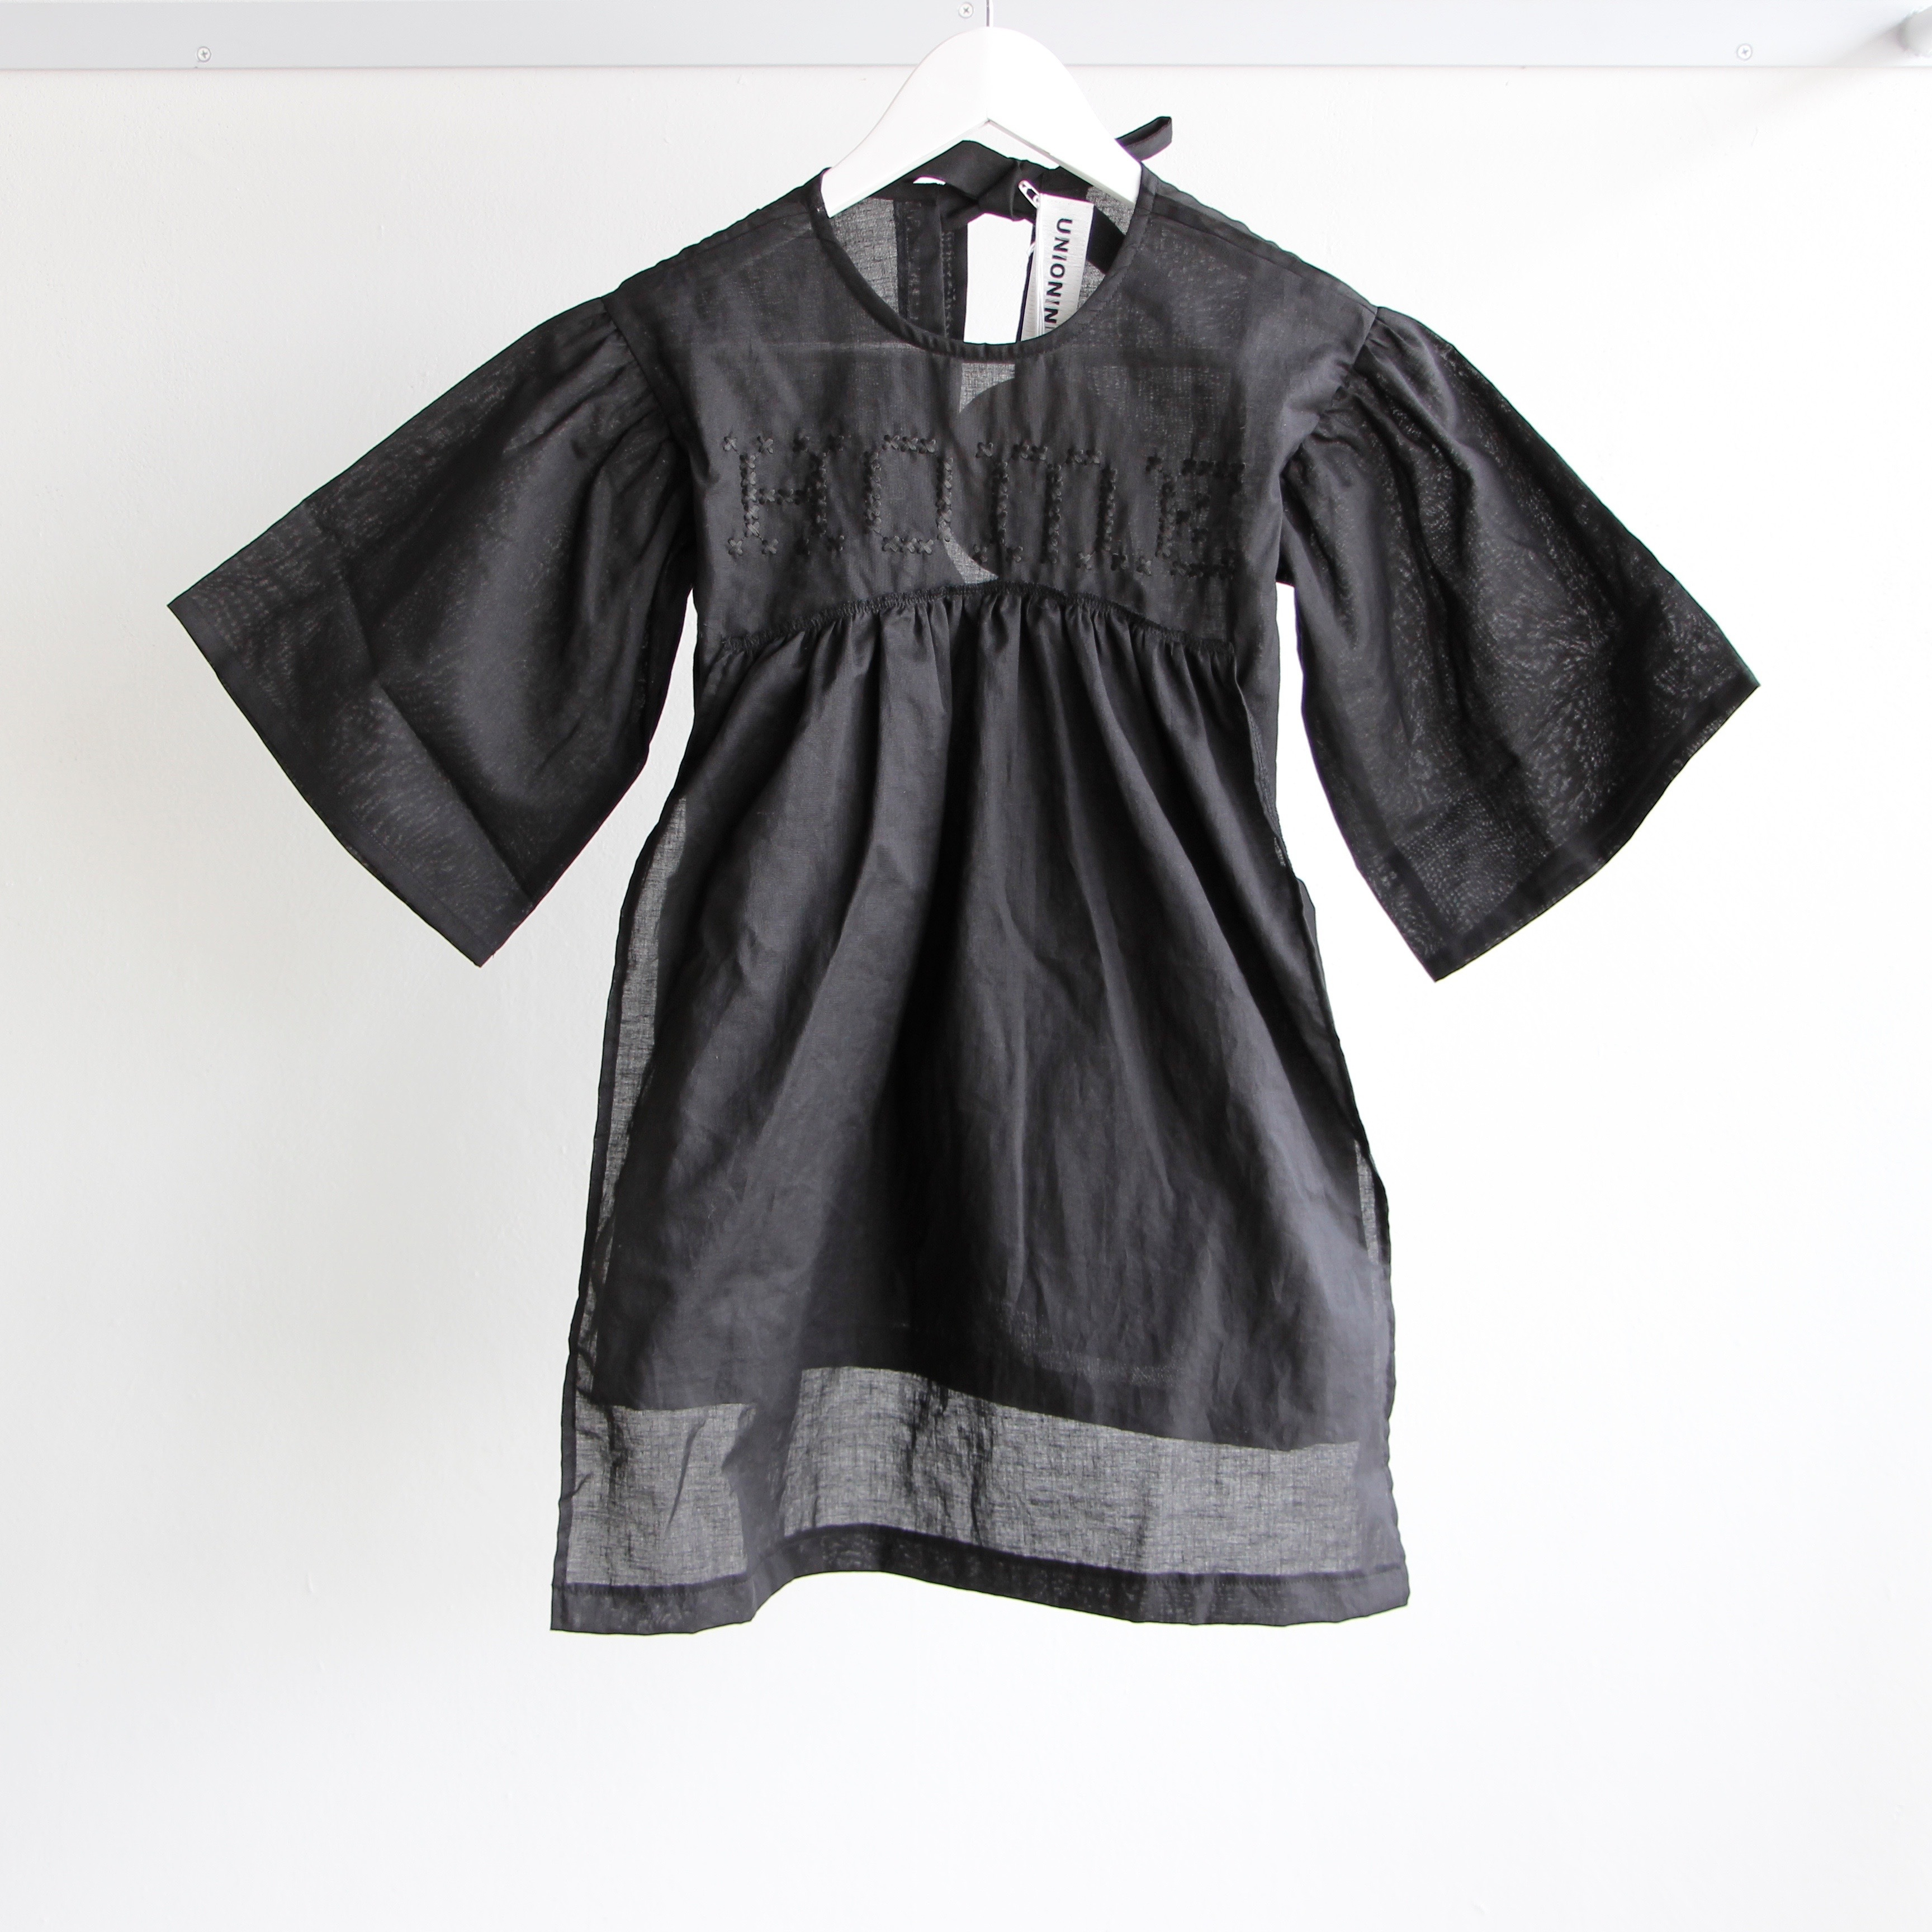 《UNIONINI 2018SS》HOME blouse dress / black / 1Y-10Y